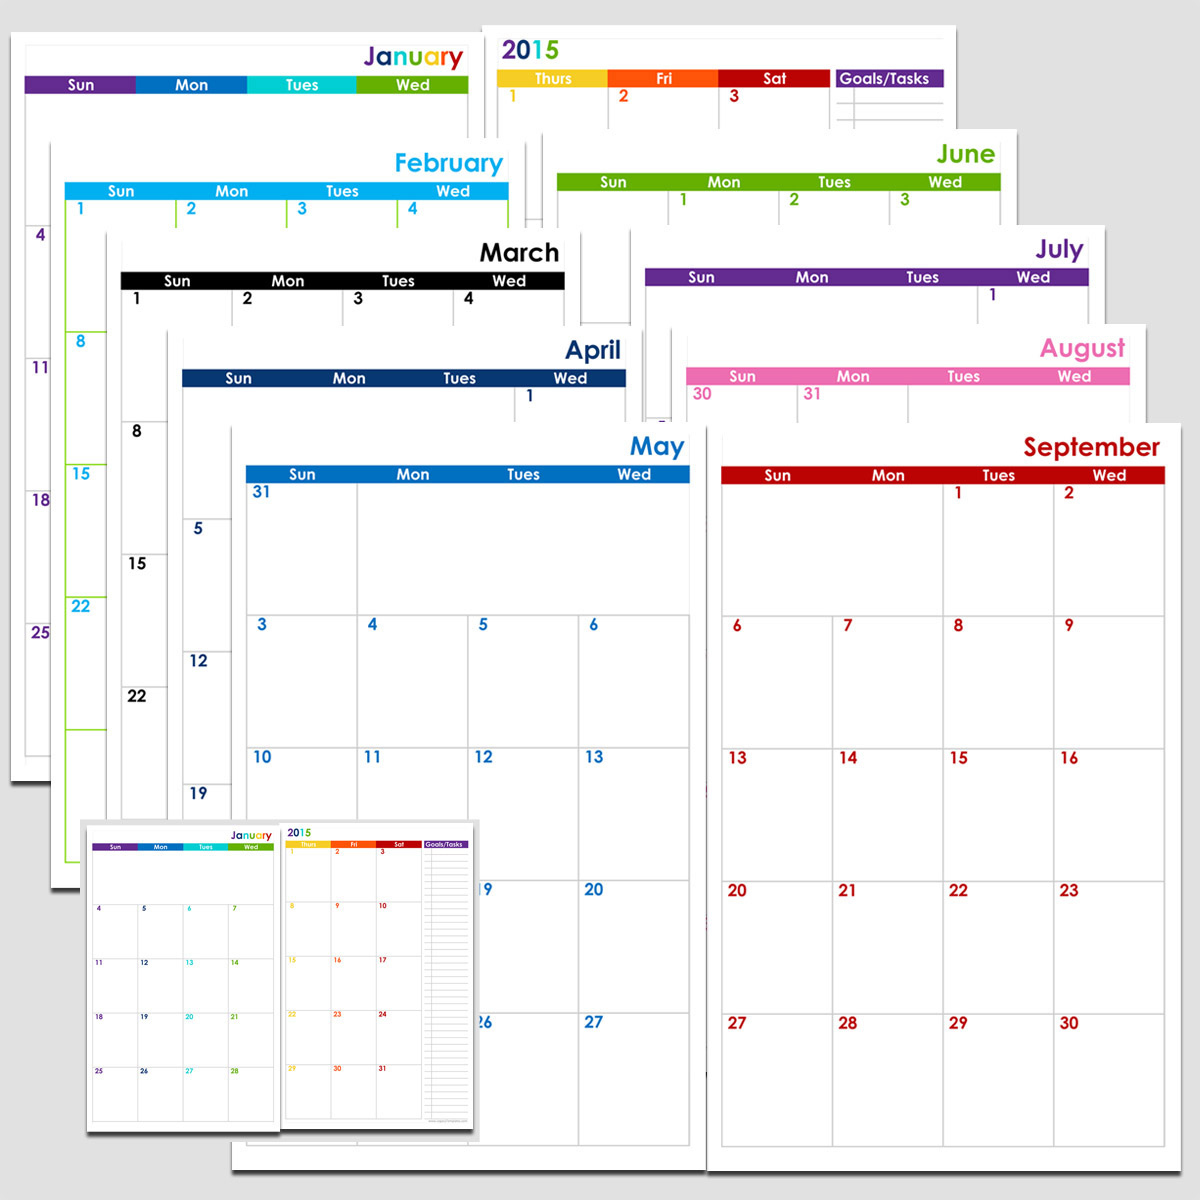 72-Months 2-Page Calendar (6 Years) - Half Size | Legacy Templates within Free Yearly 5.5 X 8.5 Calendar 2020